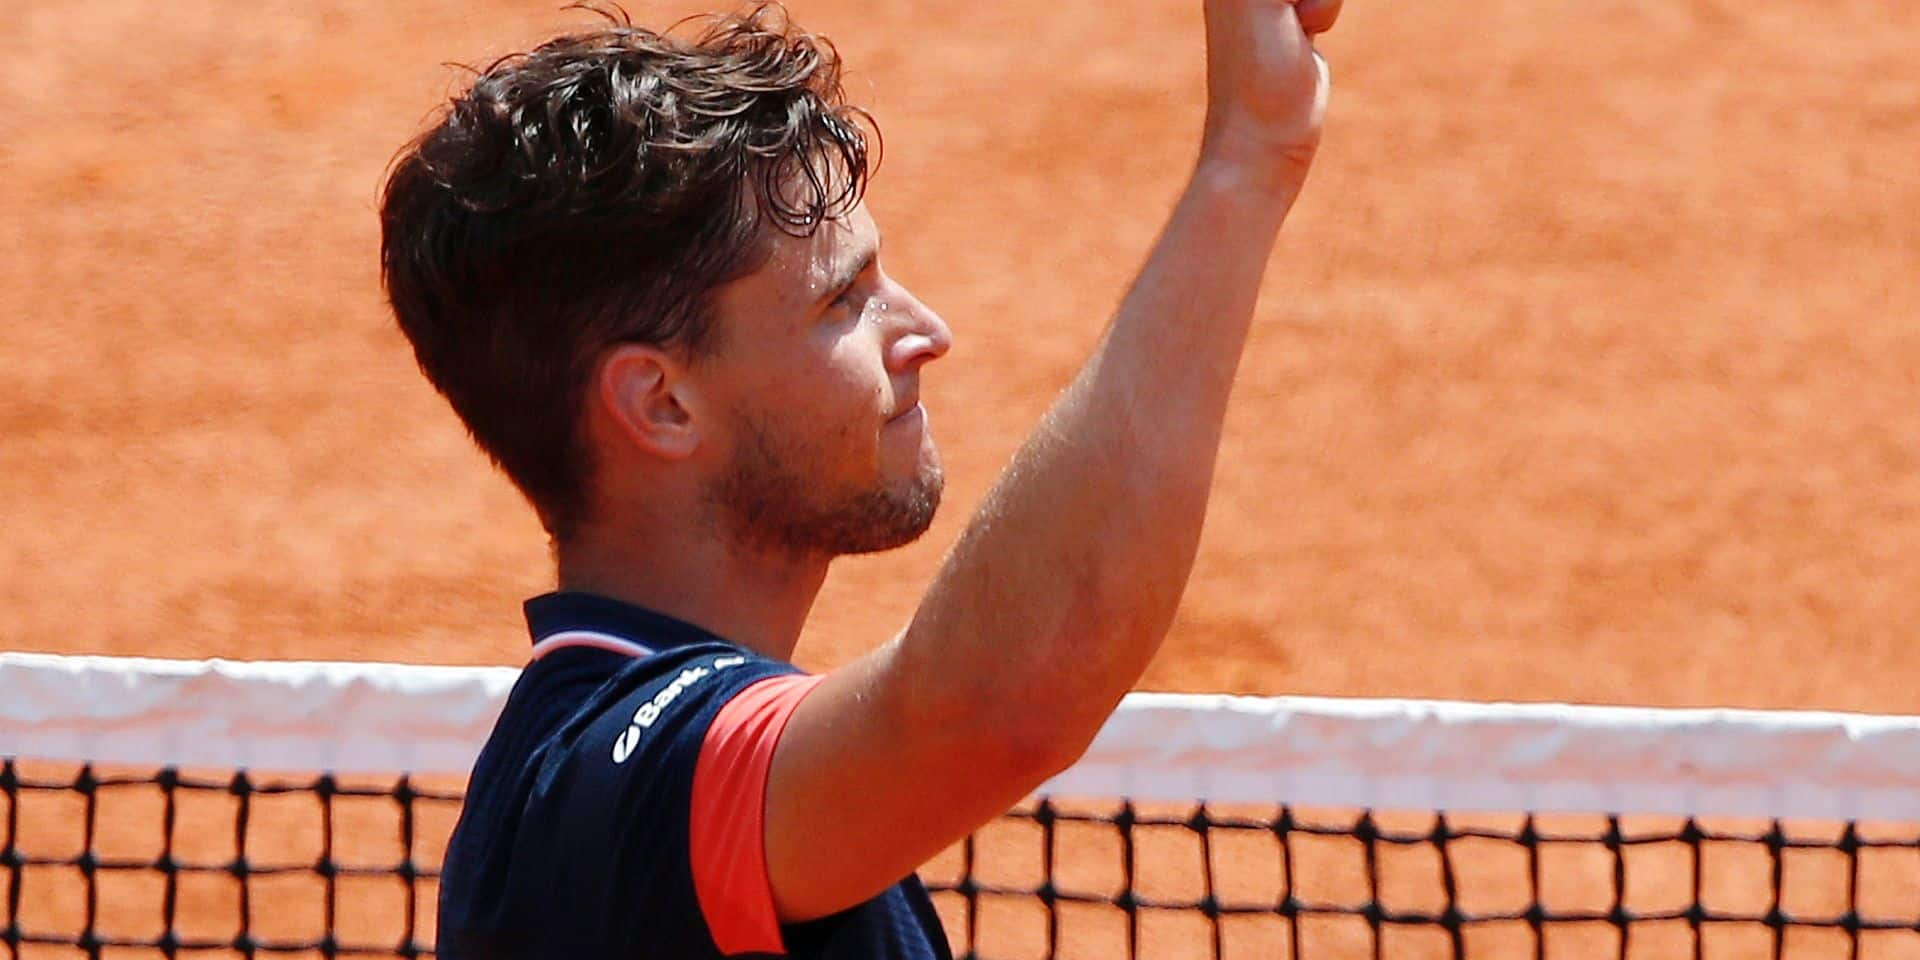 Austria's Dominic Thiem celebrates winning his semifinal match of the French Open tennis tournament against Italy's Marco Cecchinato in three sets 7-5, 7-6 (12-10), 6-1, at the Roland Garros stadium in Paris, France, Friday, June 8, 2018. (AP Photo/Christophe Ena)